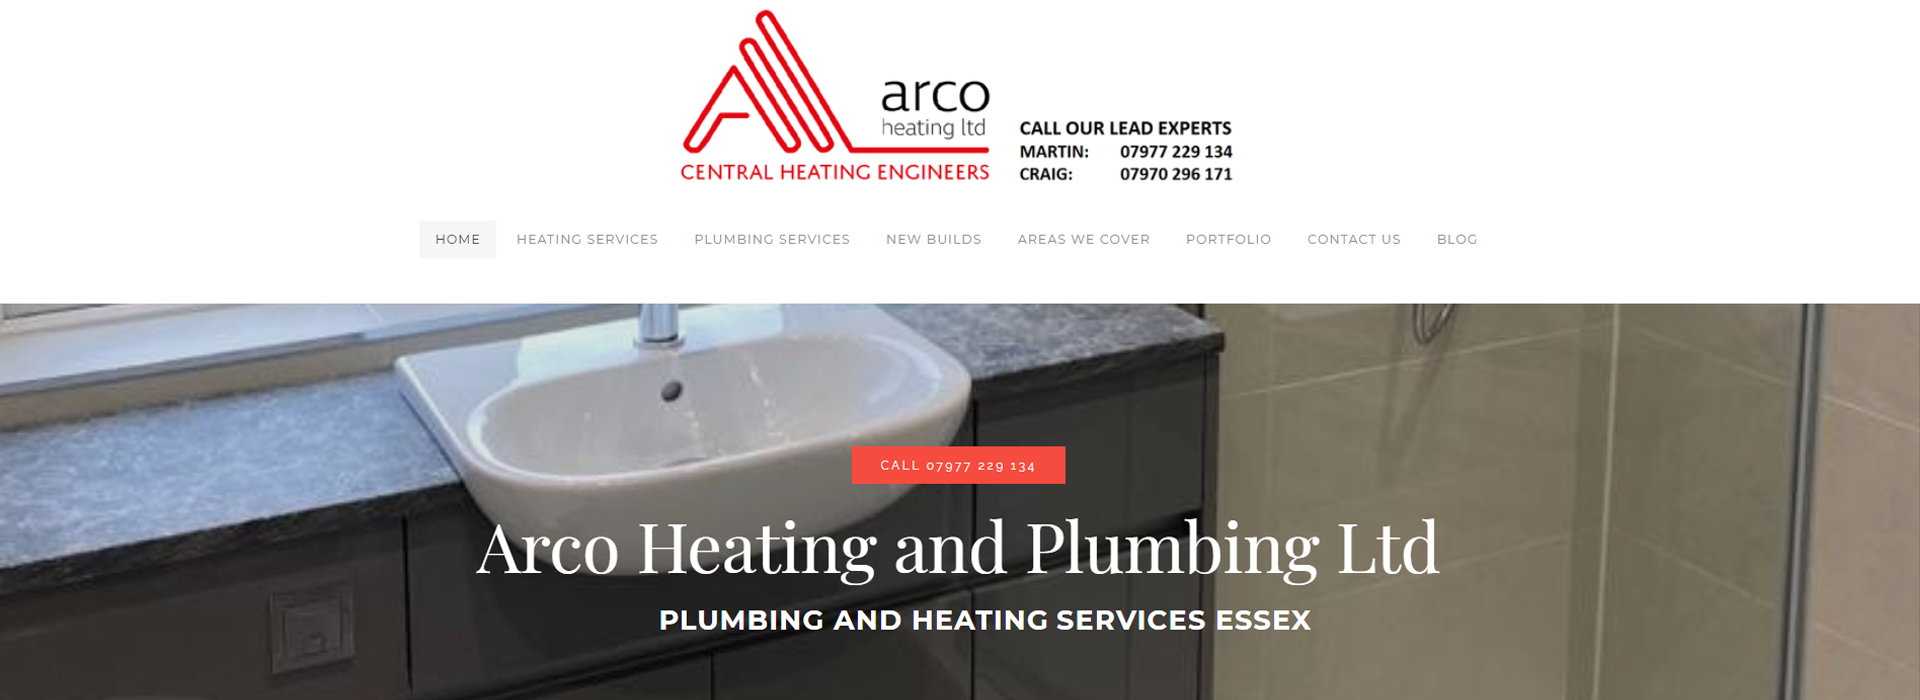 Arco heating and plumbing ltd